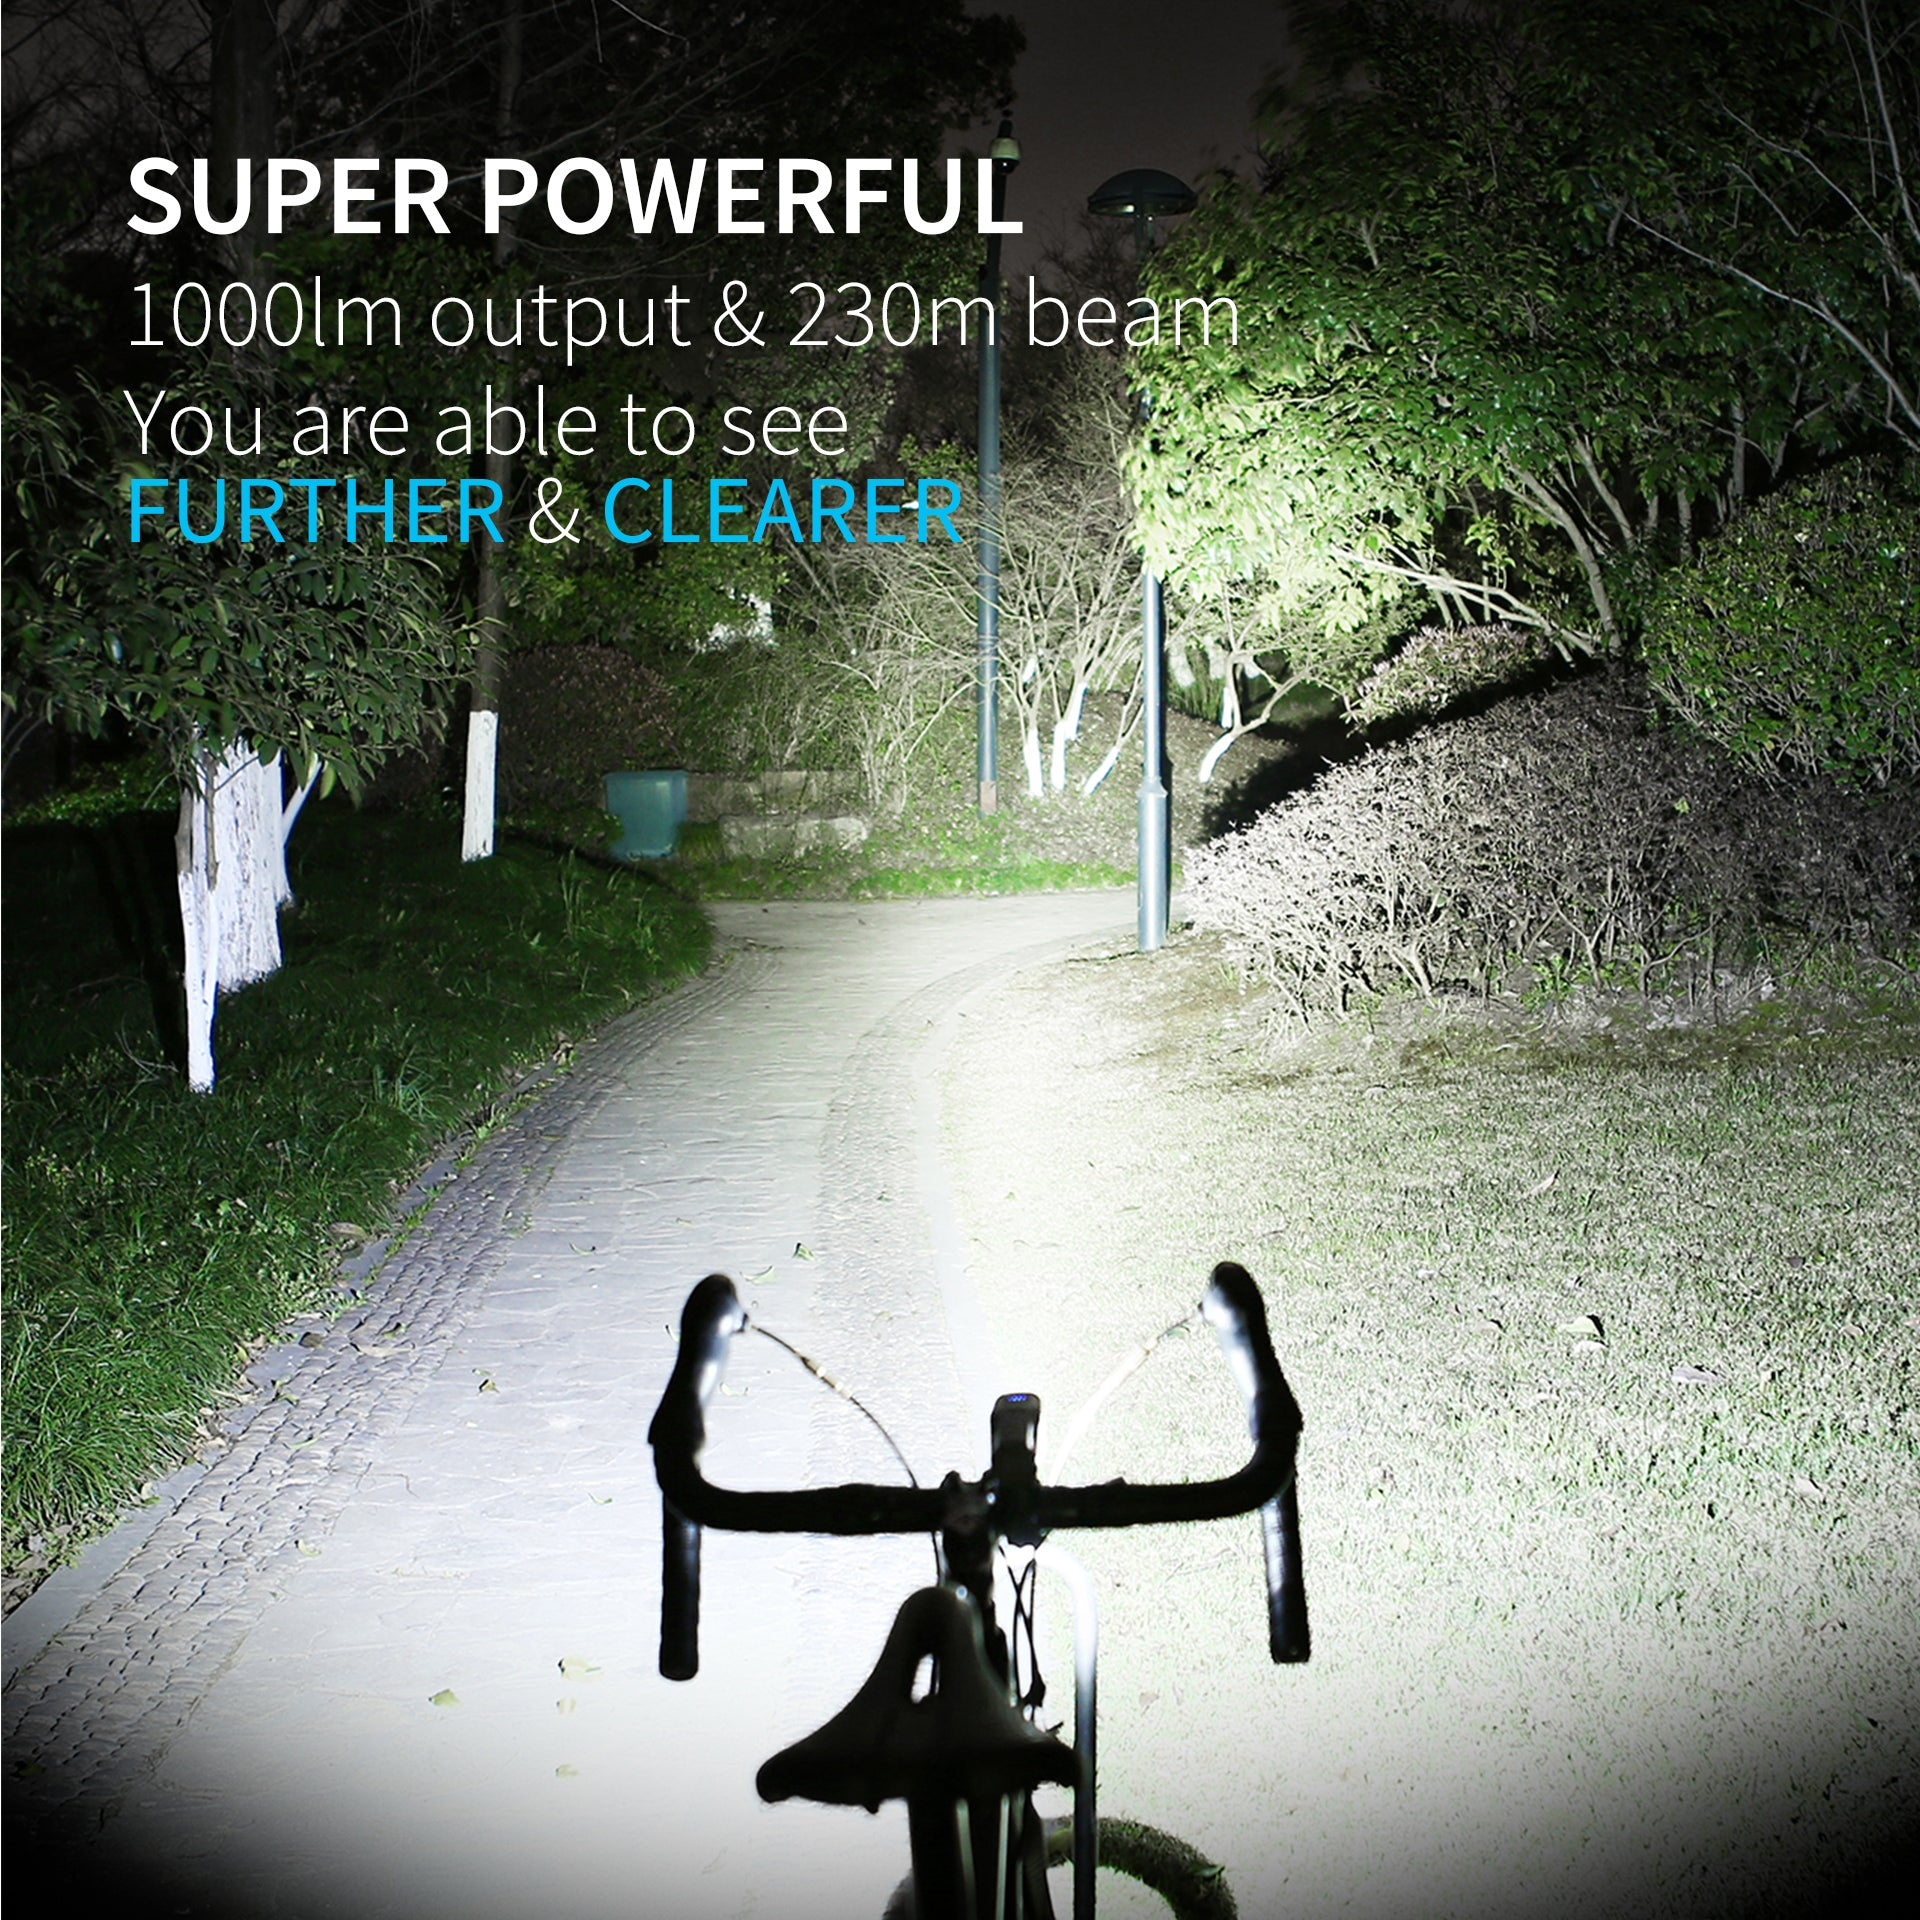 super powerful bike headlight